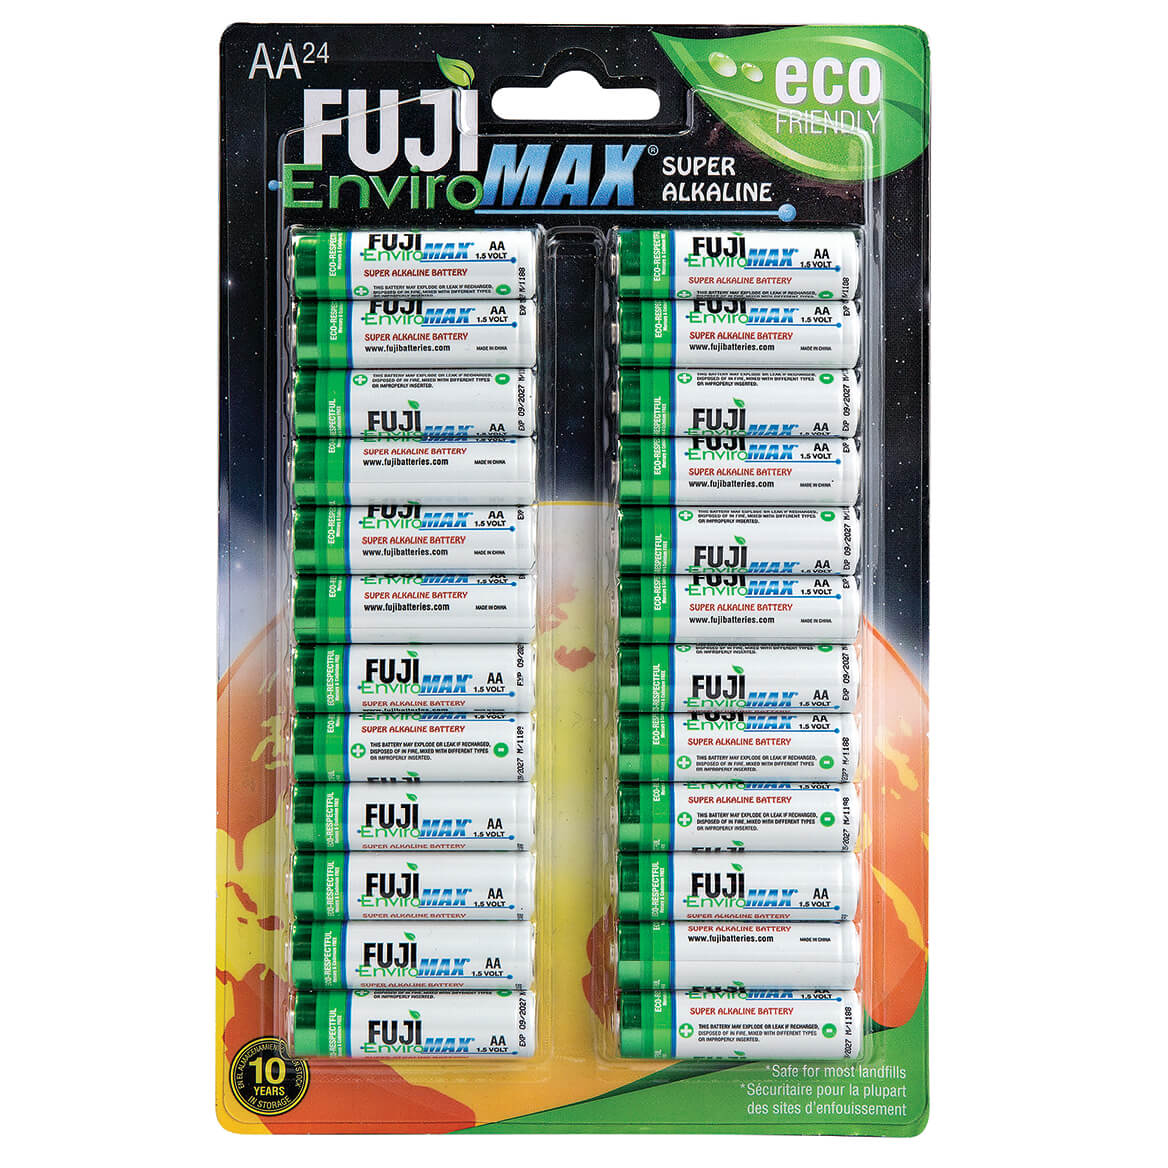 Fuji Super Alkaline AA Batteries, 24 Pack-364147